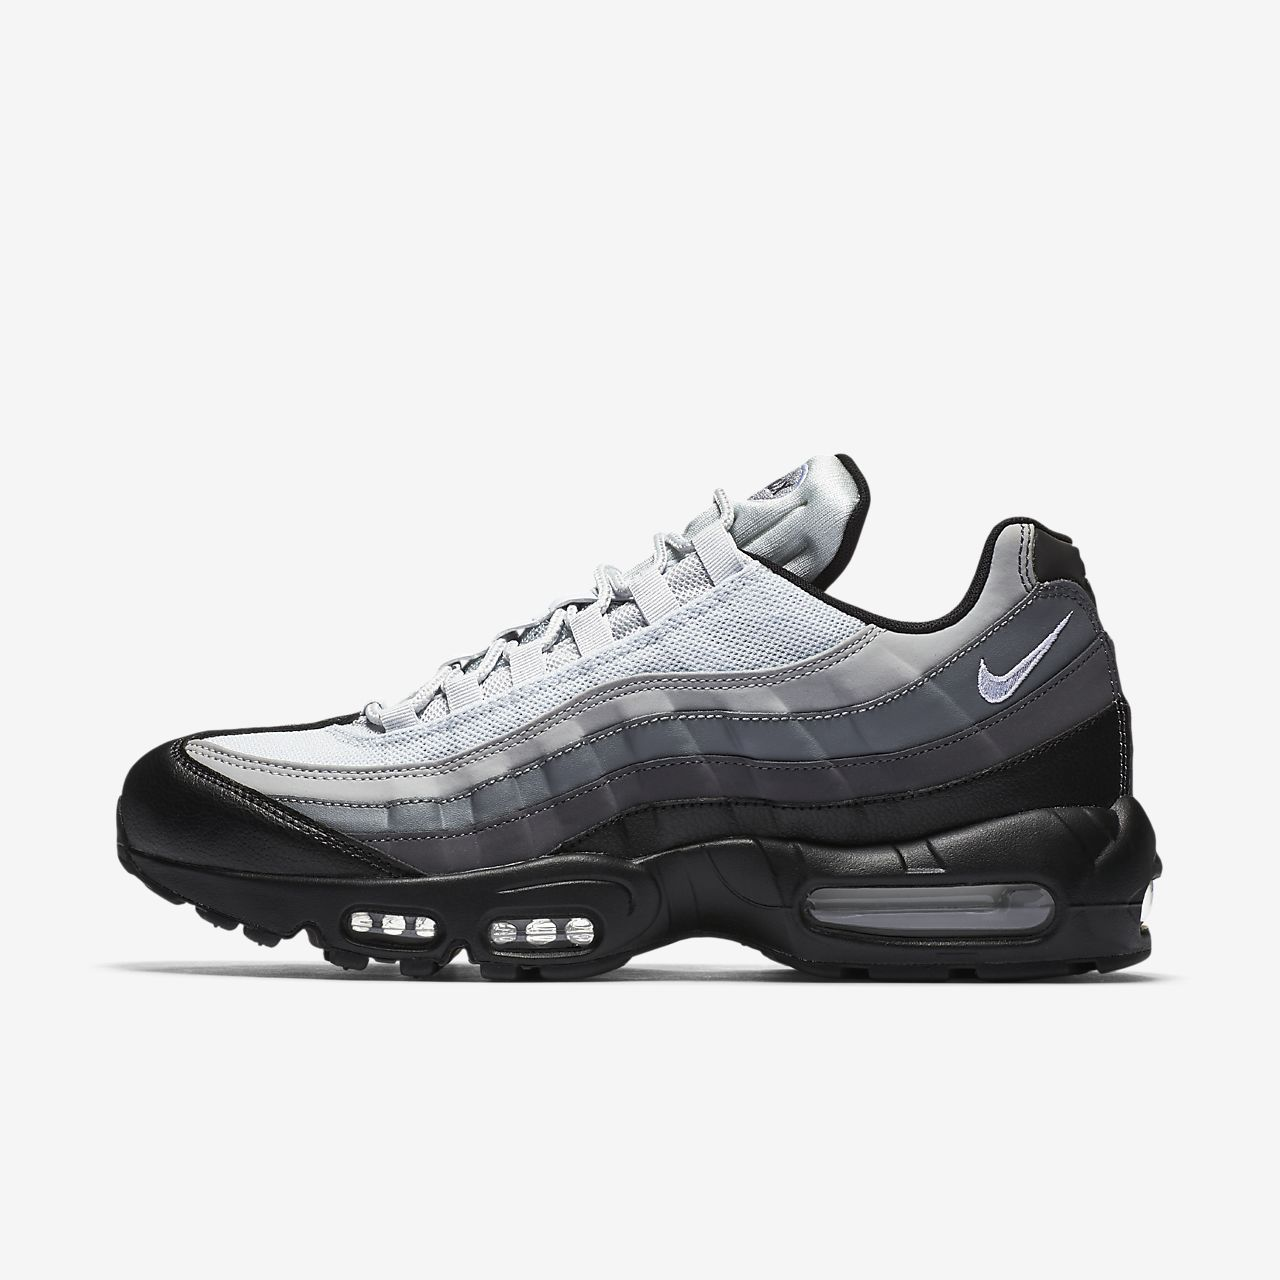 Nike Black And Grey Mlc Shoes